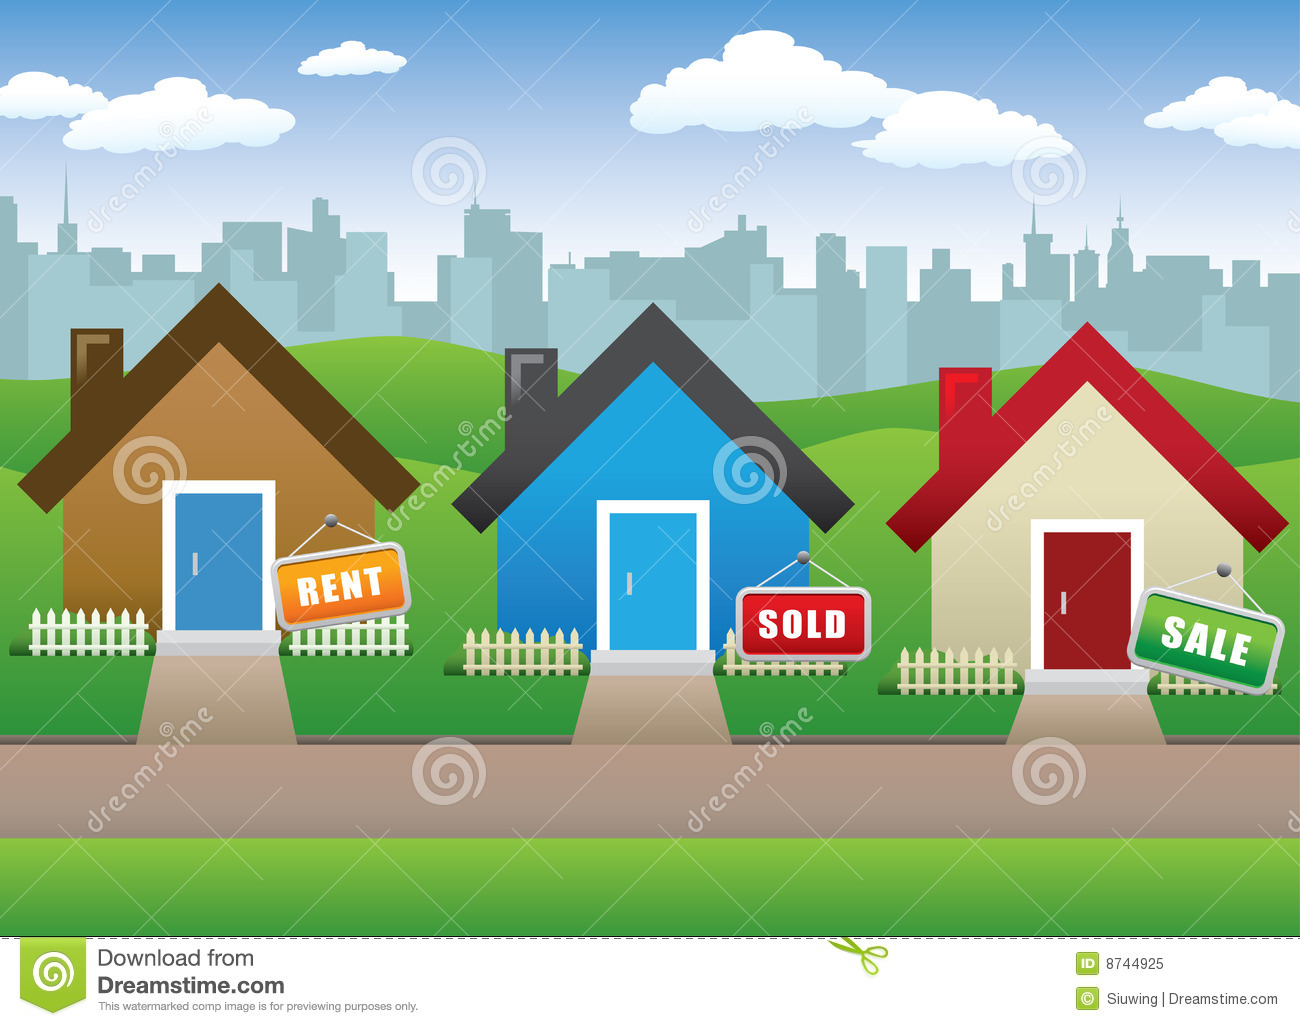 Real Estate Background : Real estate homes backgrounds imgkid the image